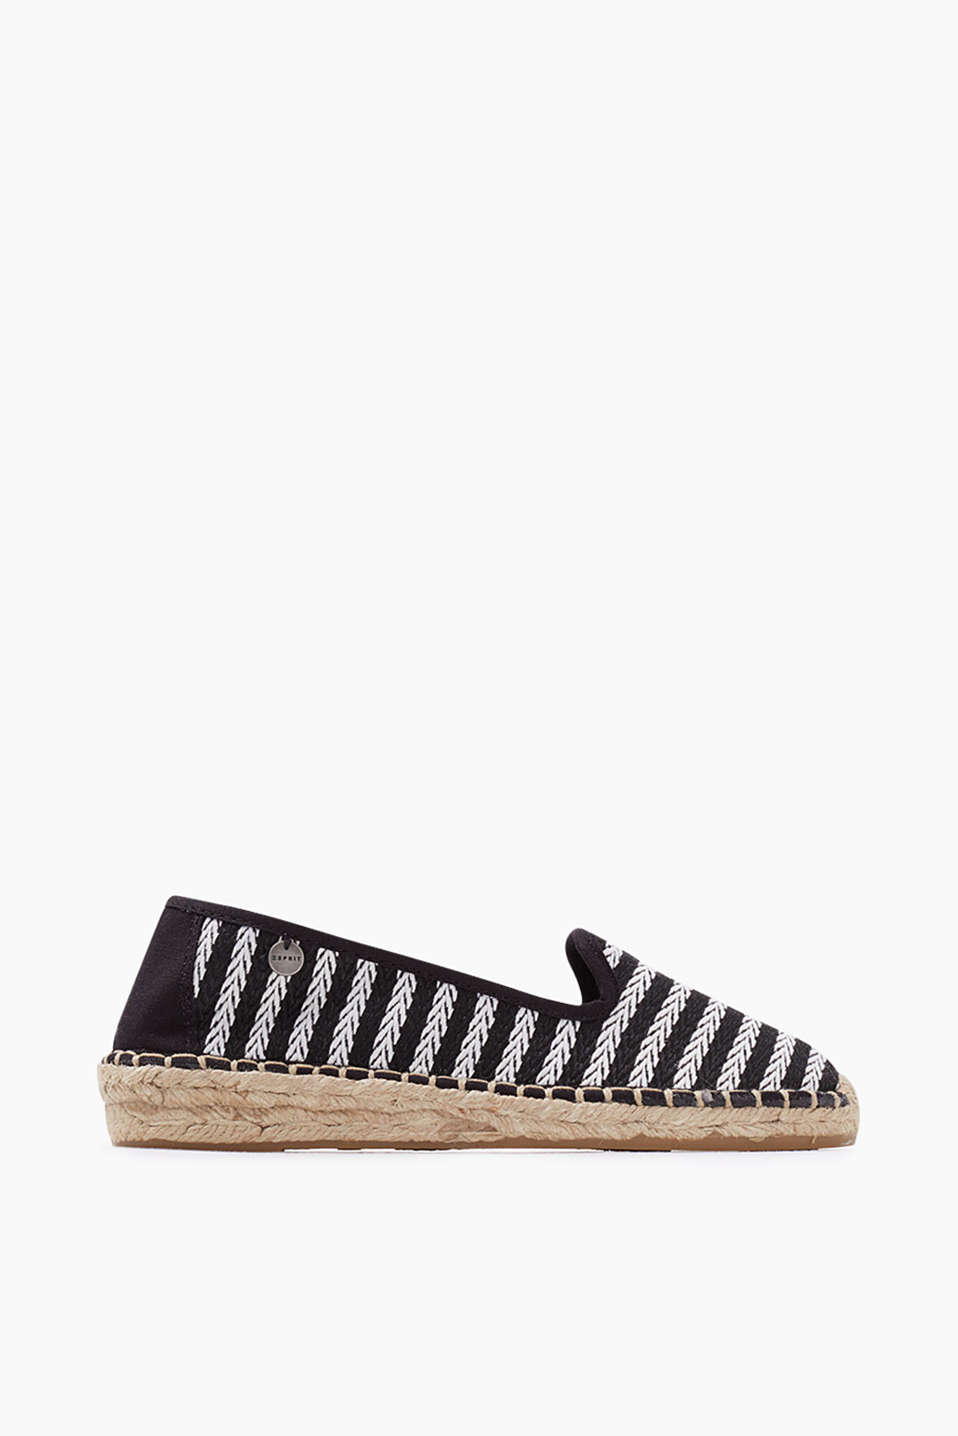 Espadrilles in a summery look with a rubber-coated bast sole